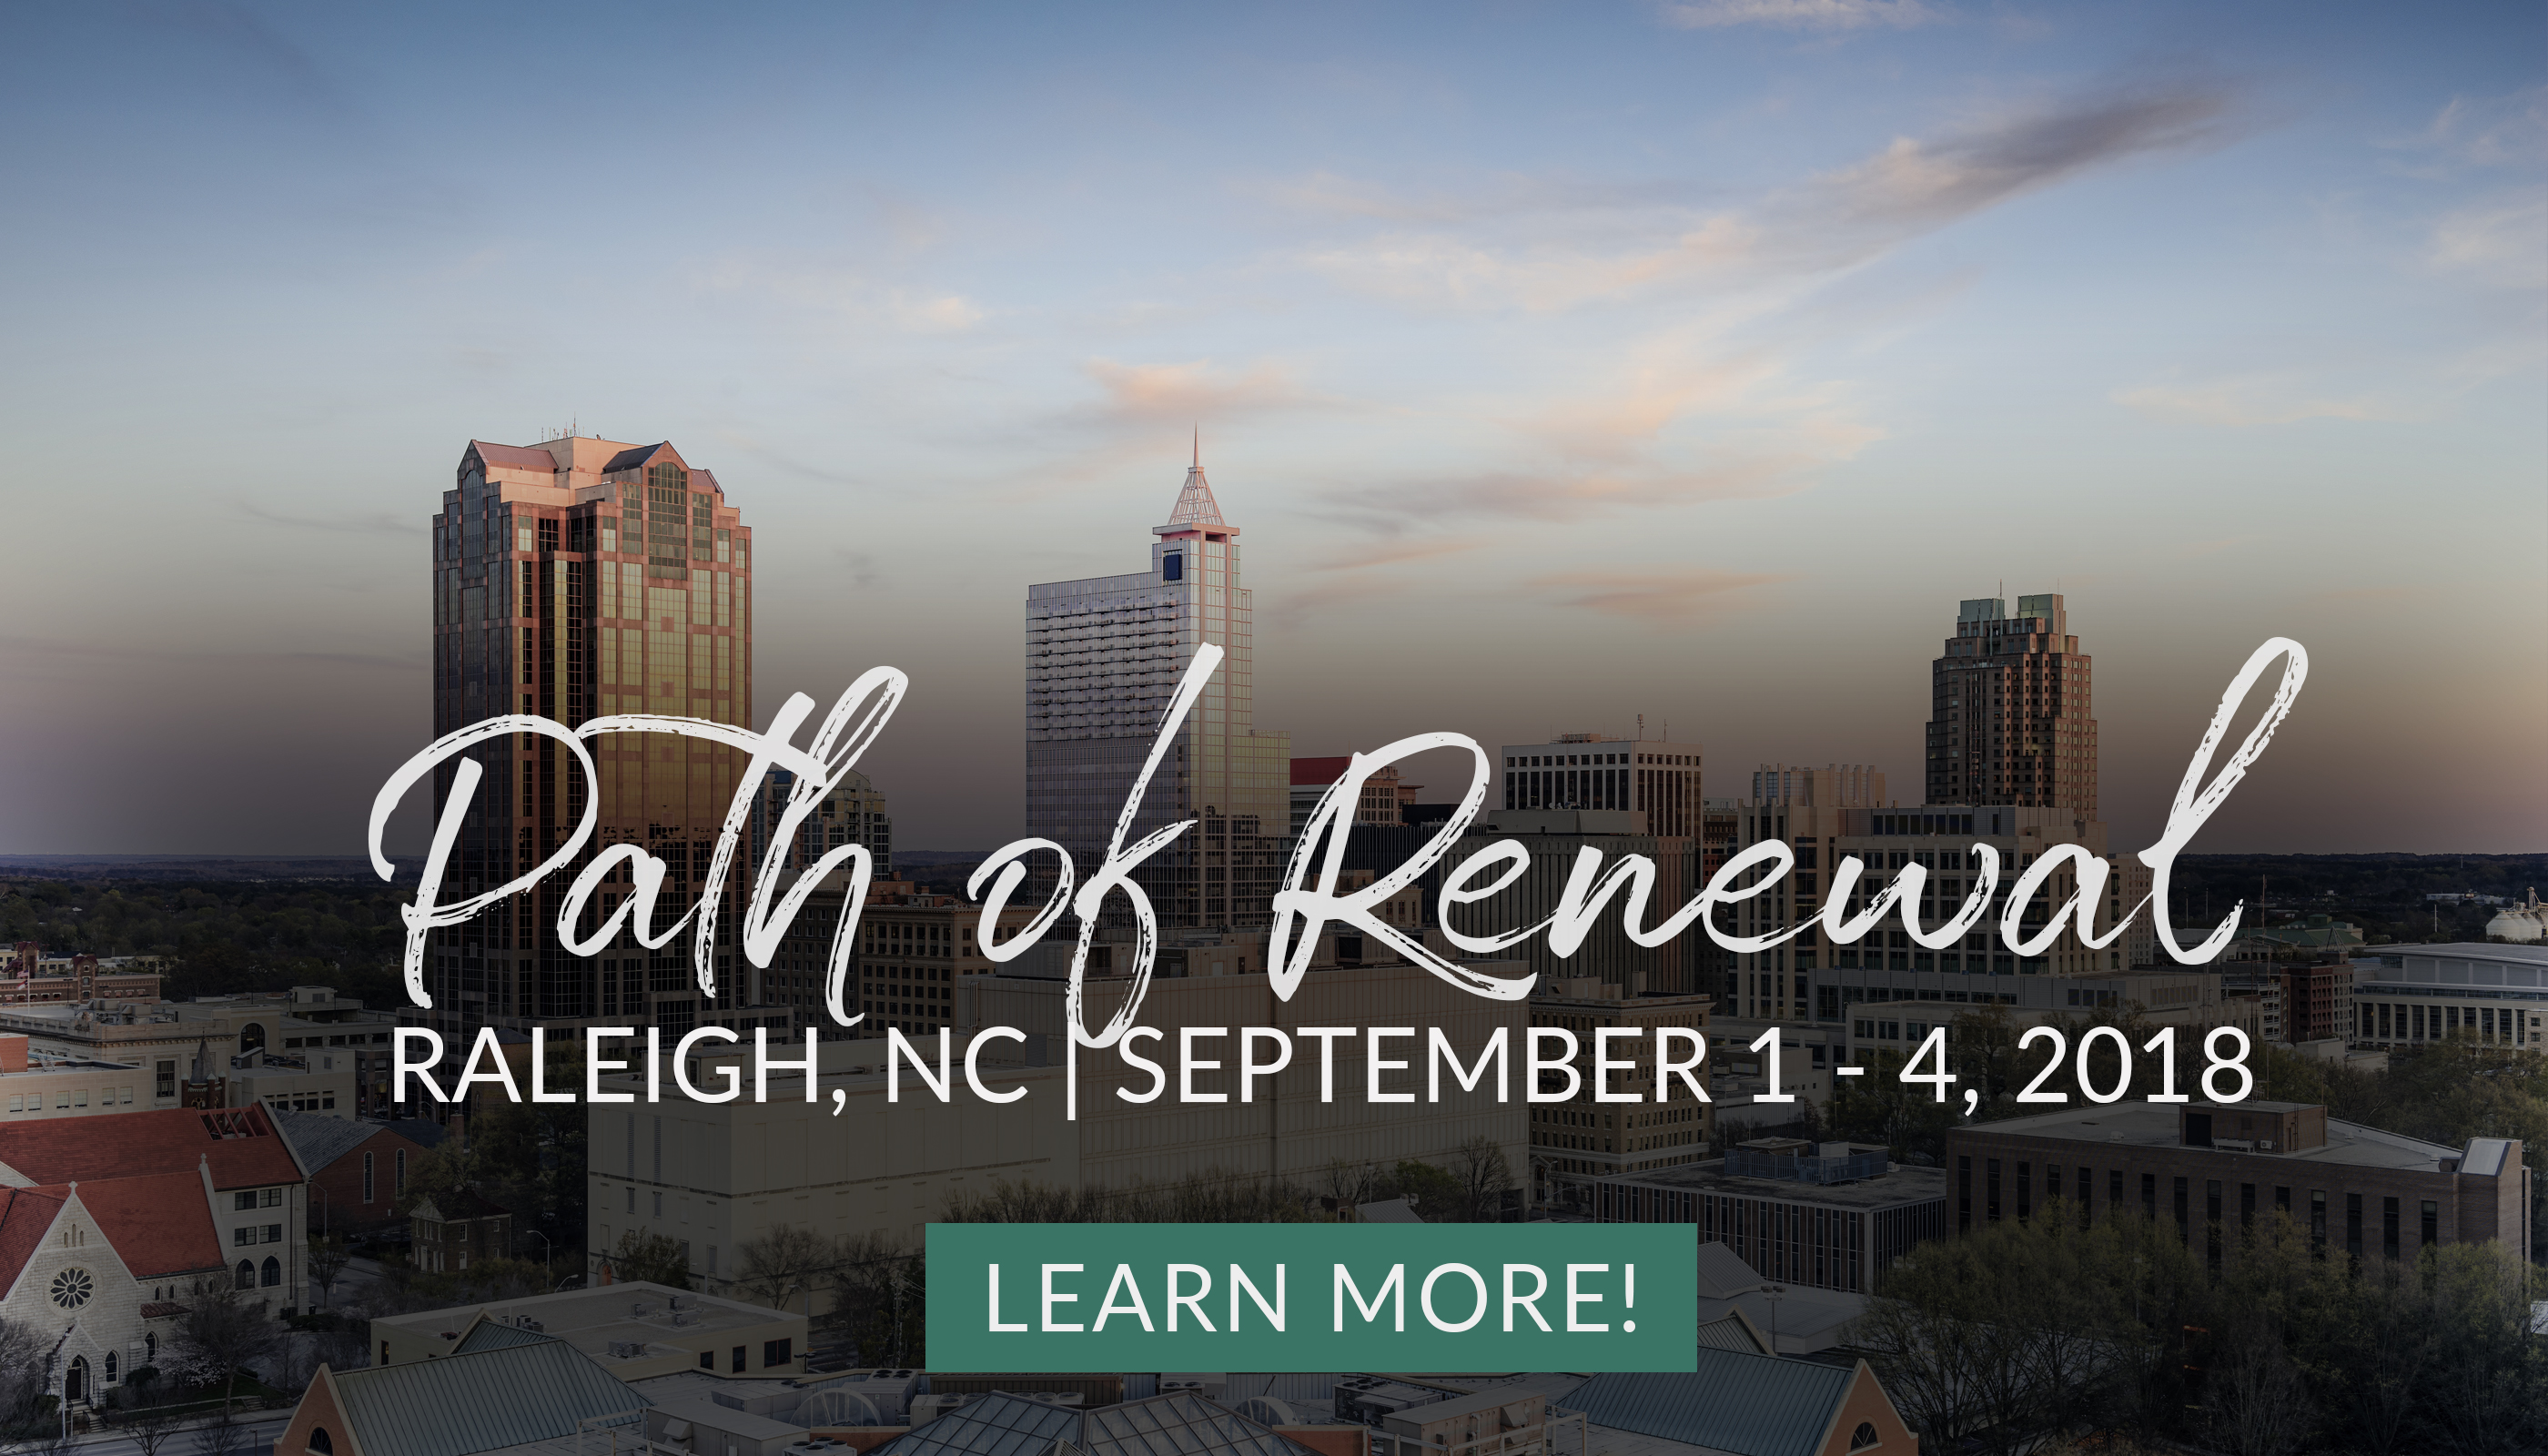 https://marriagerecoverycenter.com/wp-content/uploads/2018/06/P-or-R-Raleigh-Sept-2018.jpg